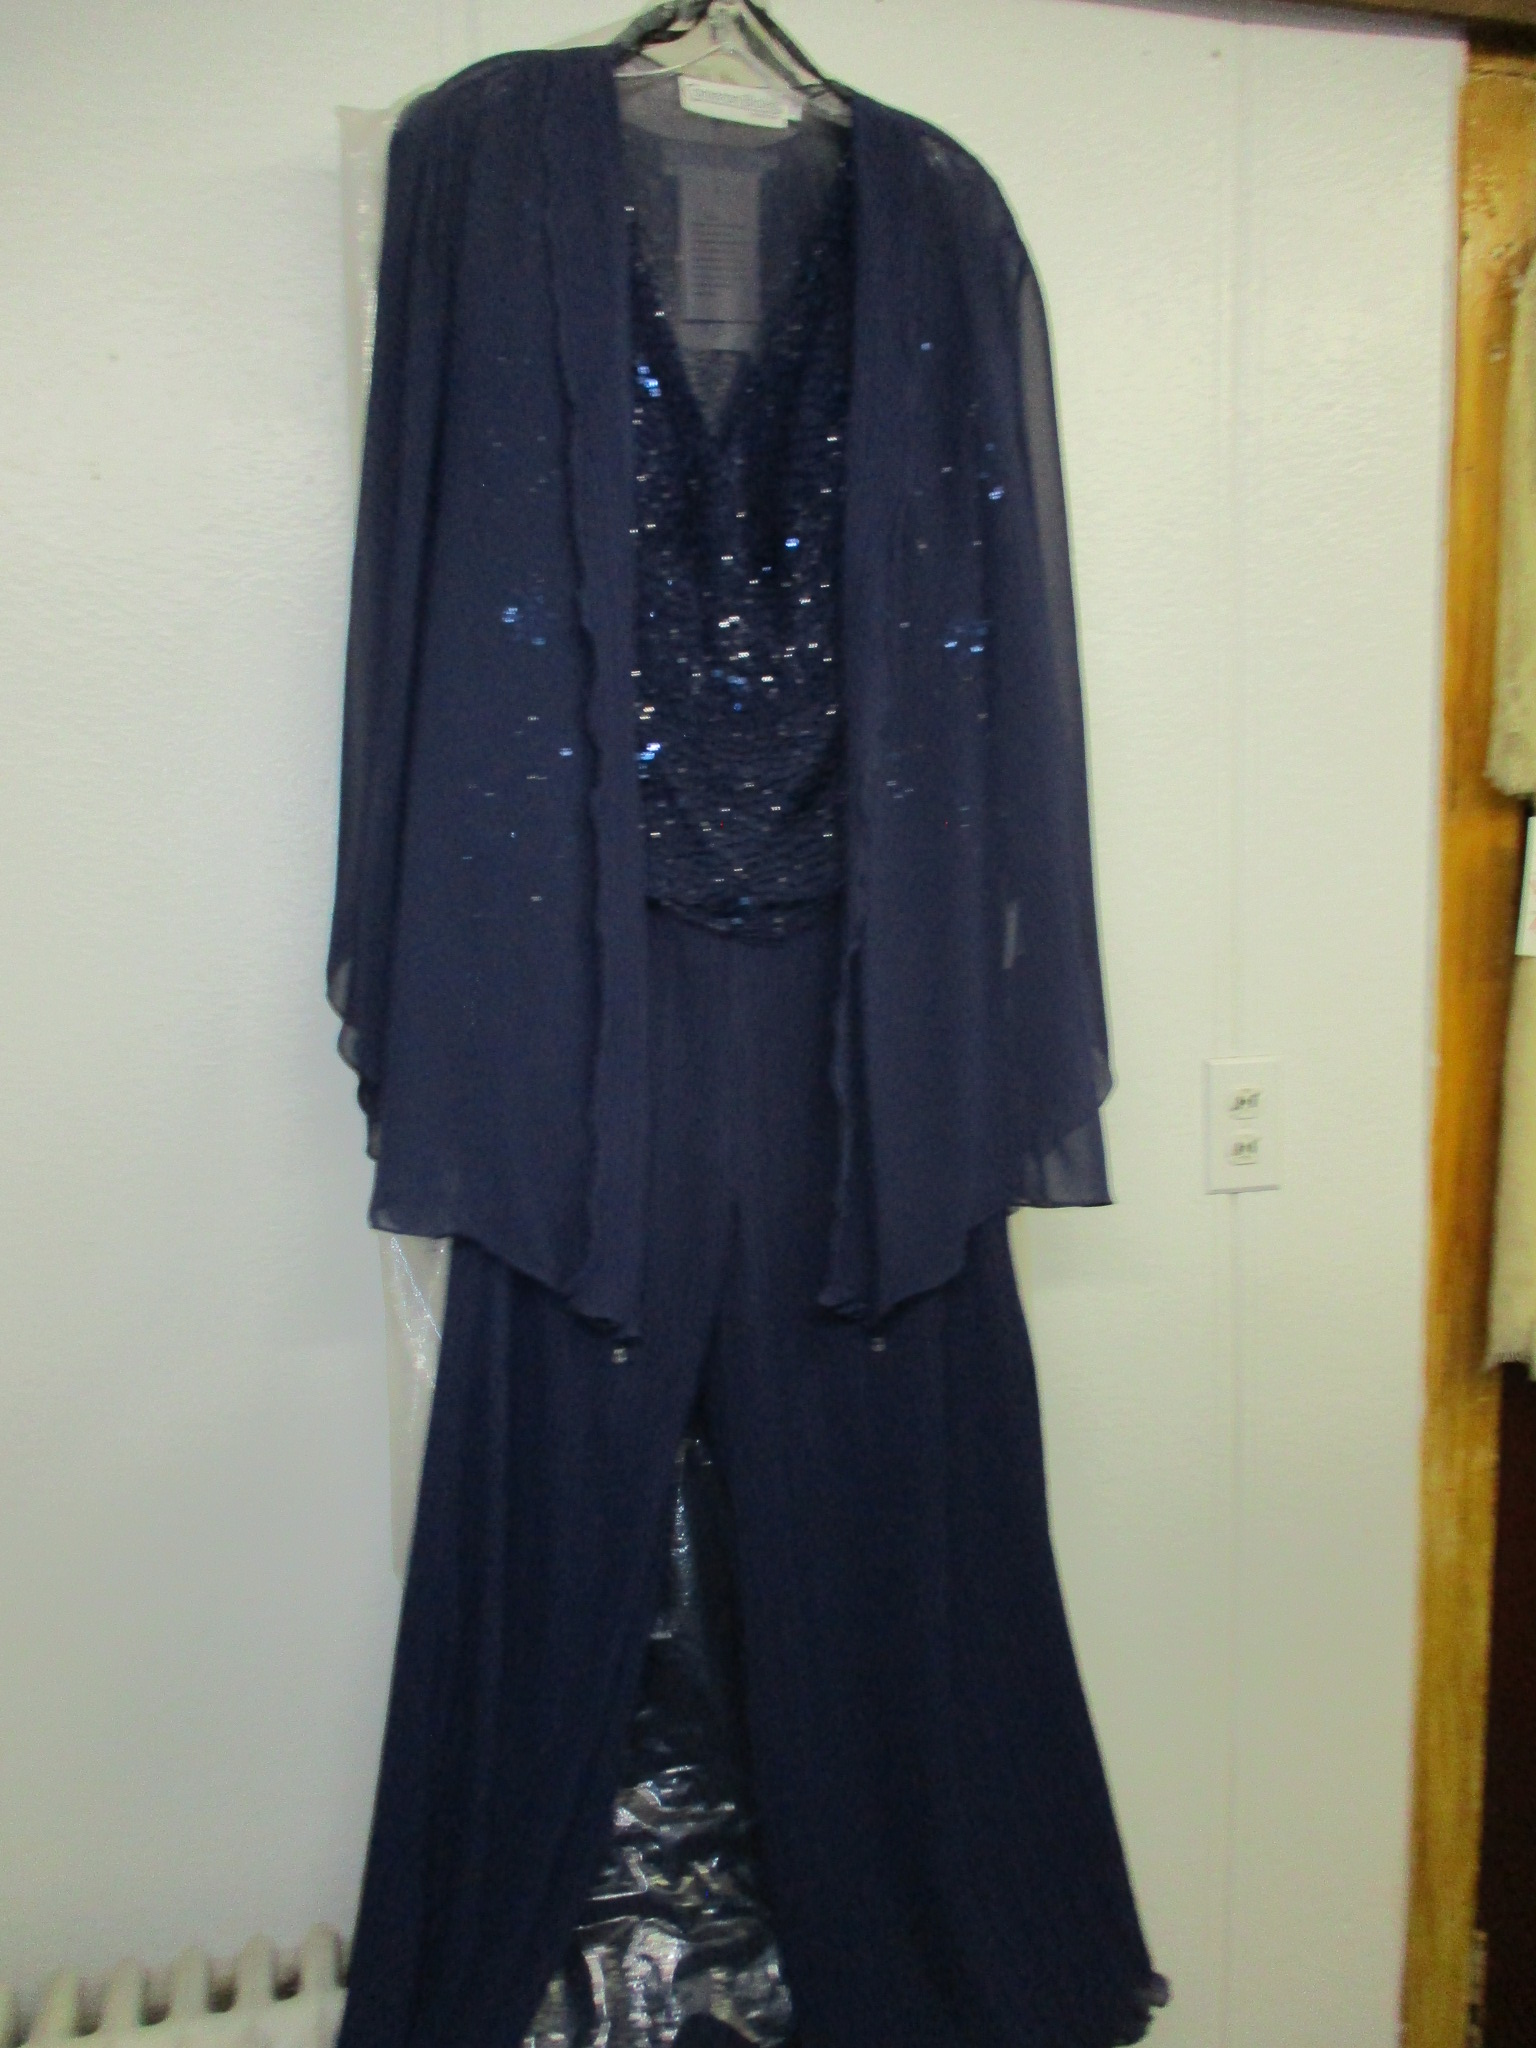 Mon Cheri - 3 Piece Mother's Navy Pant Suit 18w